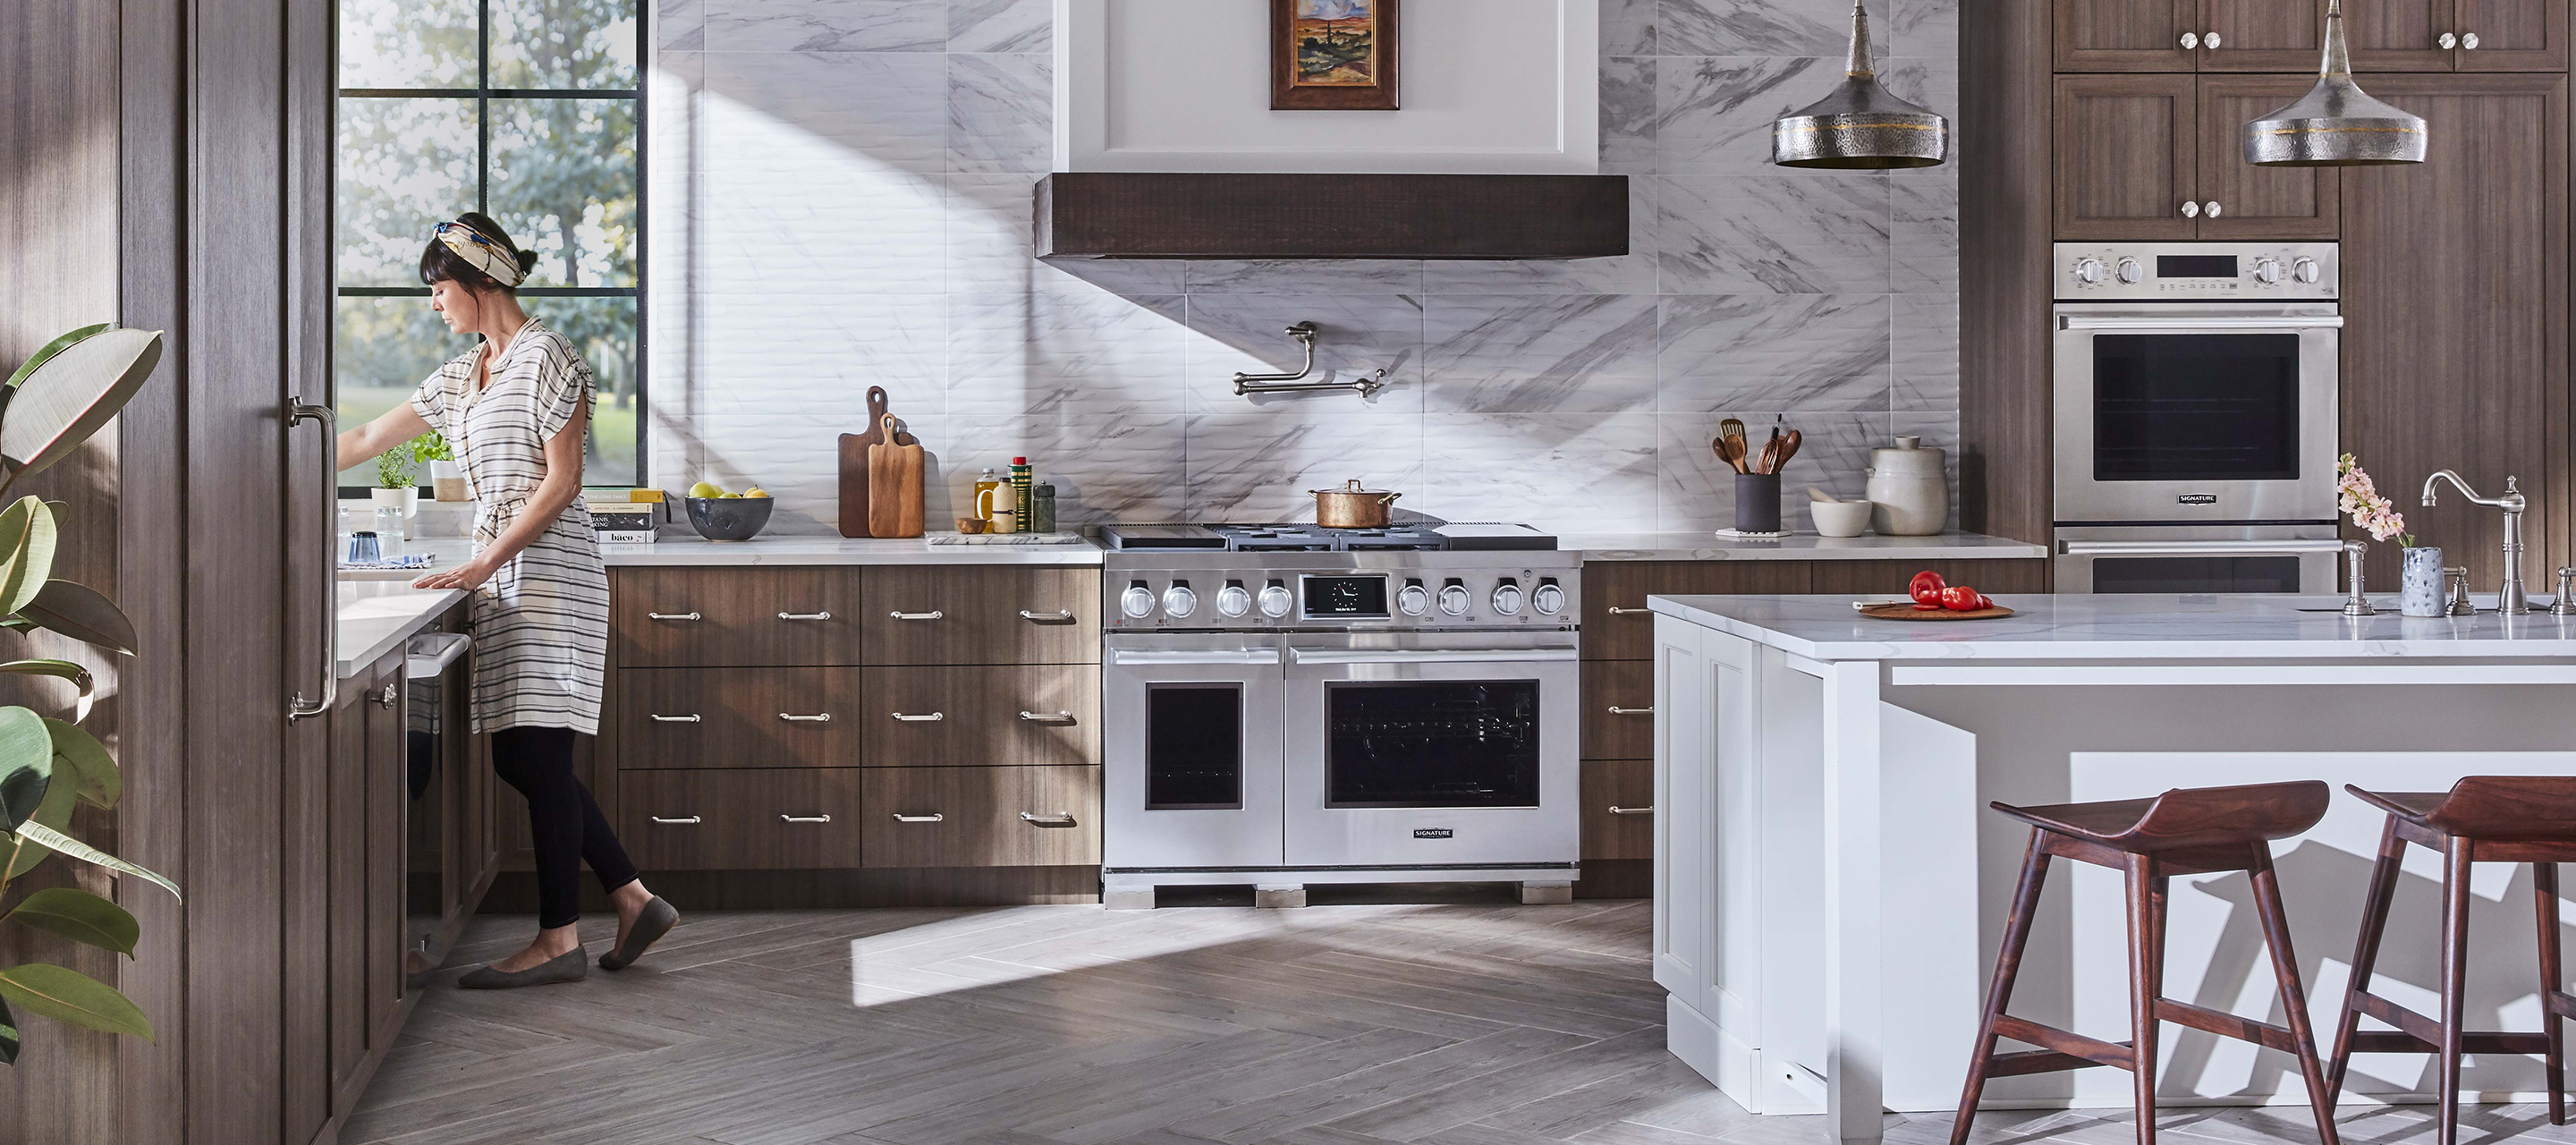 High End Kitchen Appliances For Technicureans Signature